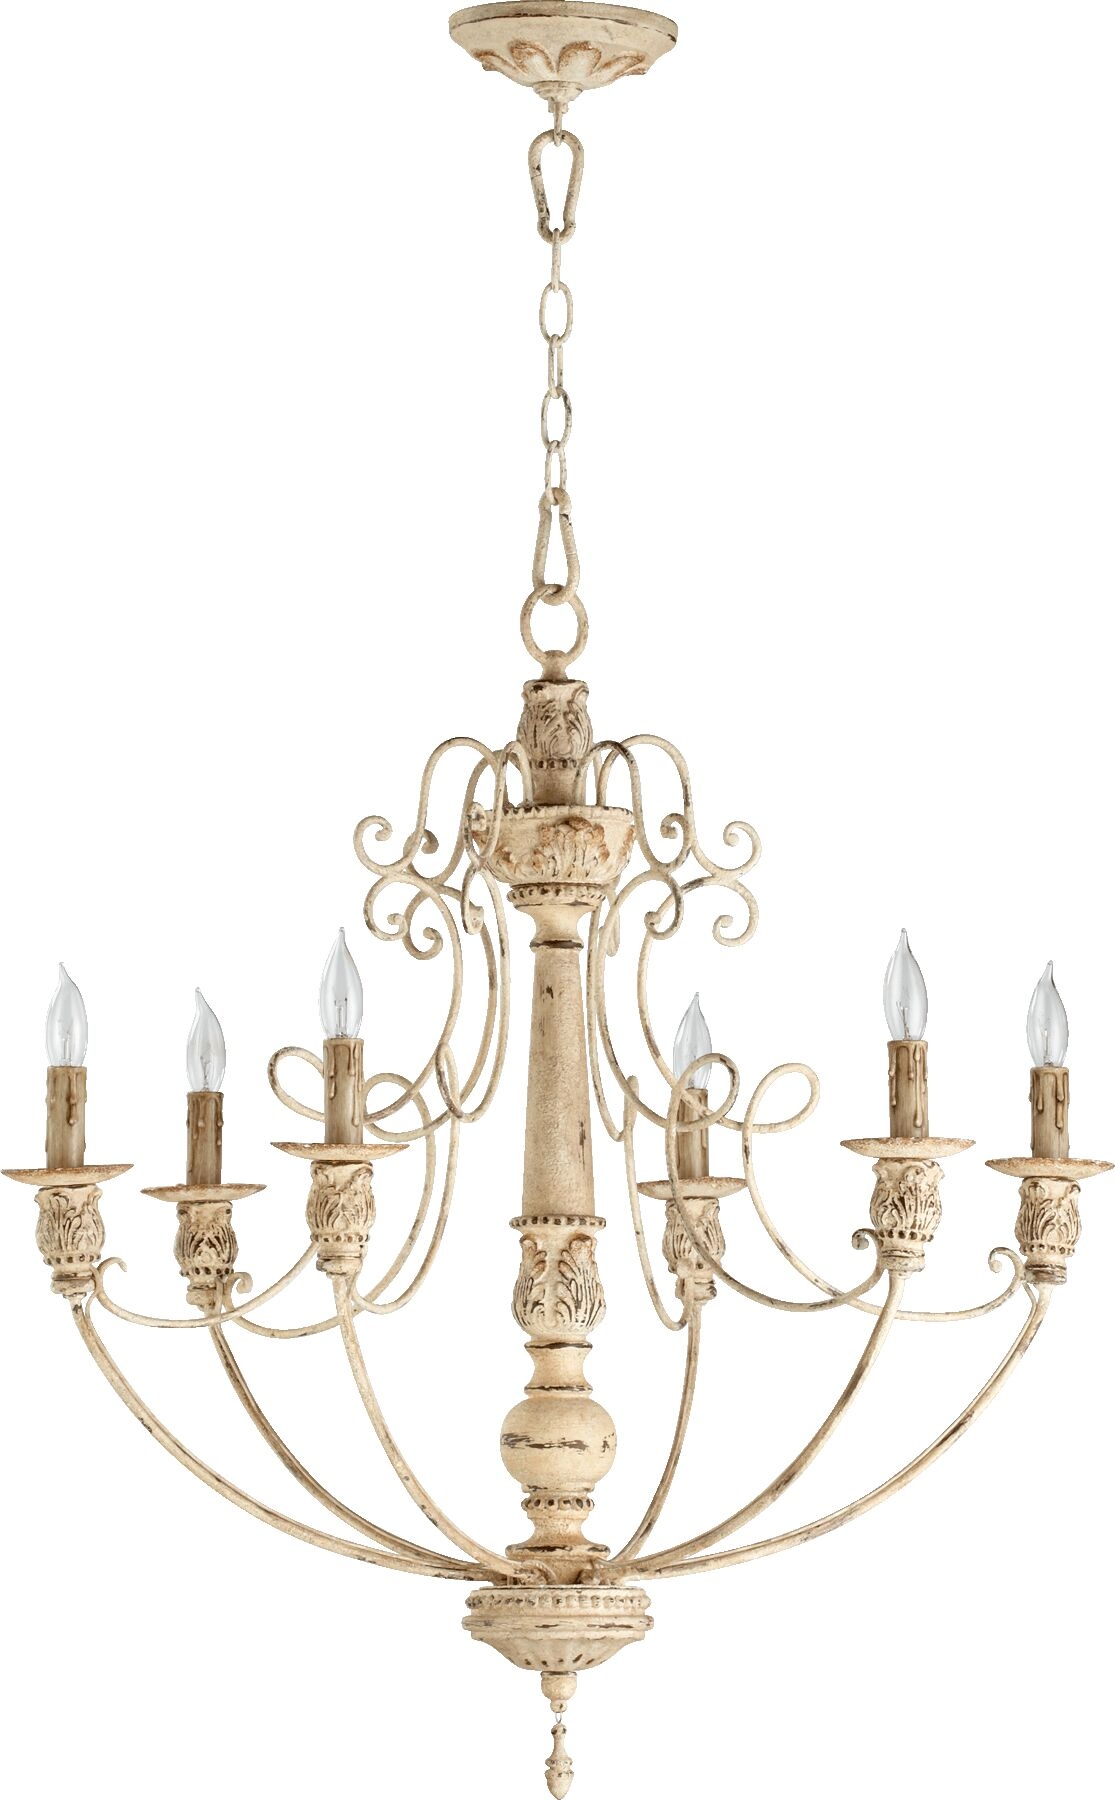 Paladino 6-Light Chandelier Finish: Persian white